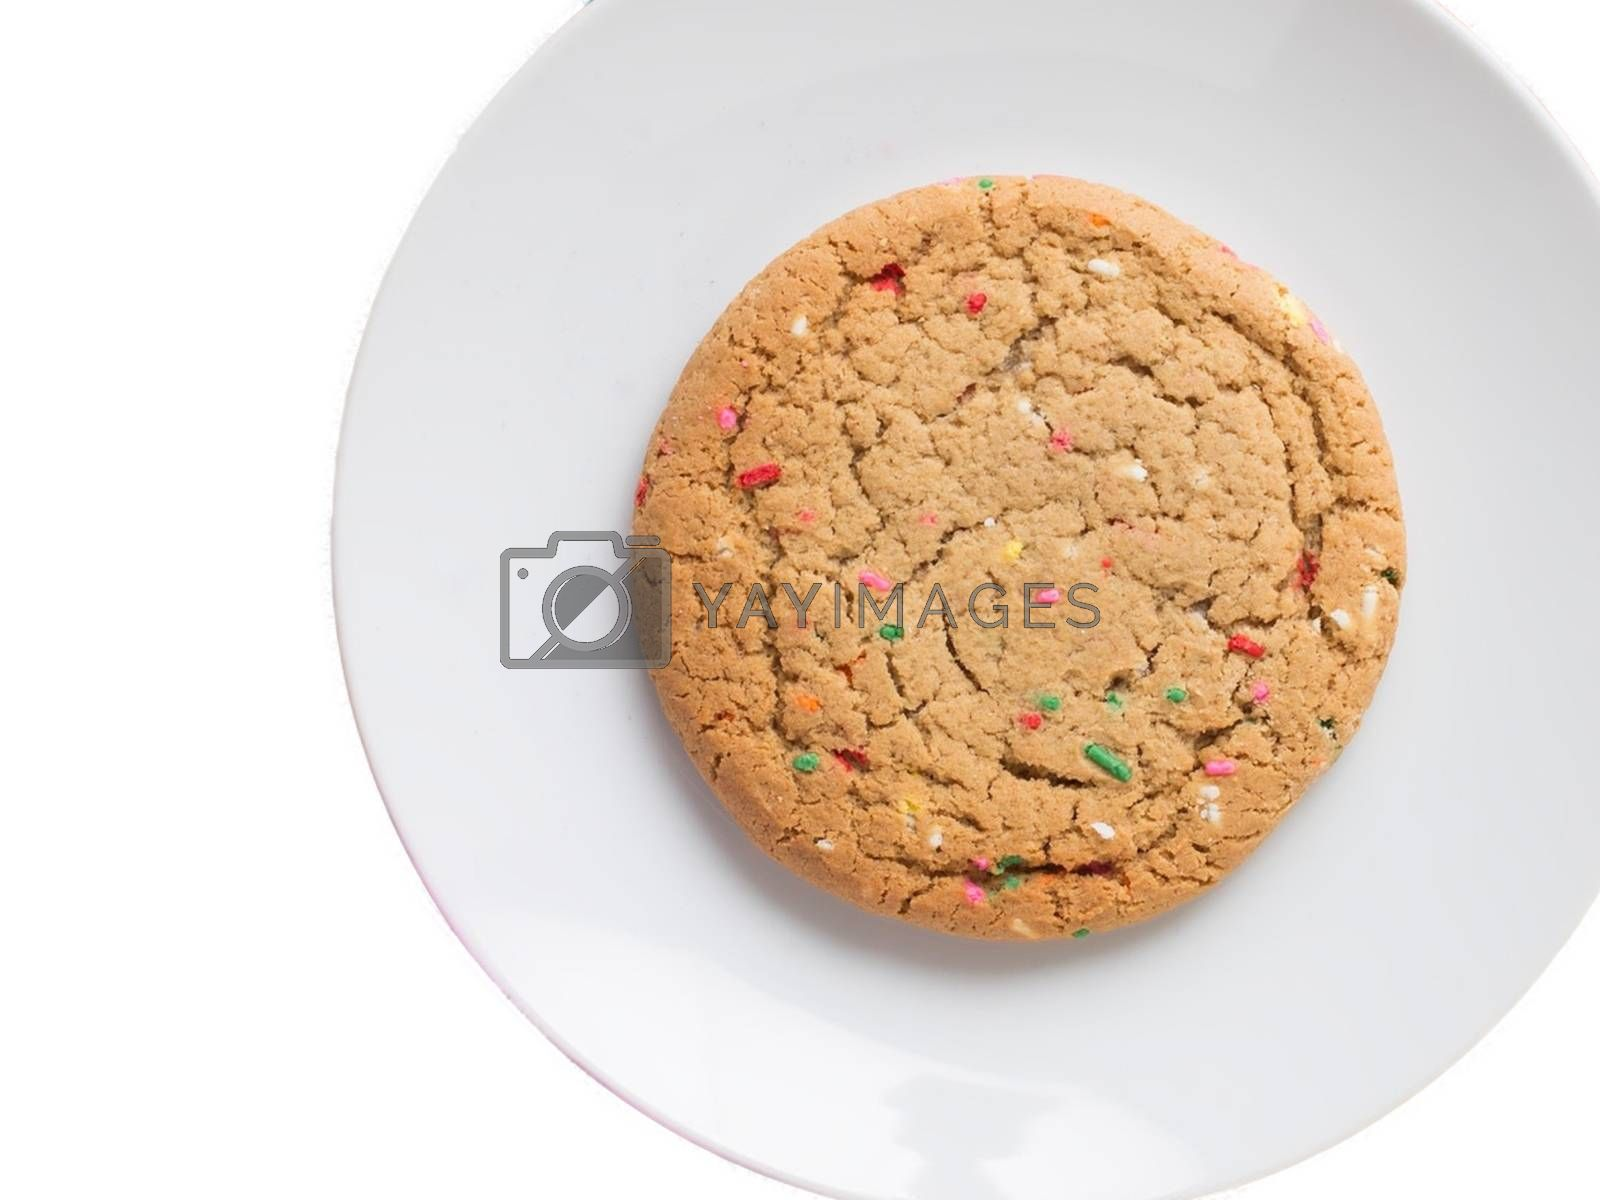 Royalty free image of Almond giant biscuits with coloured sugar pieces on a white platter by balage941